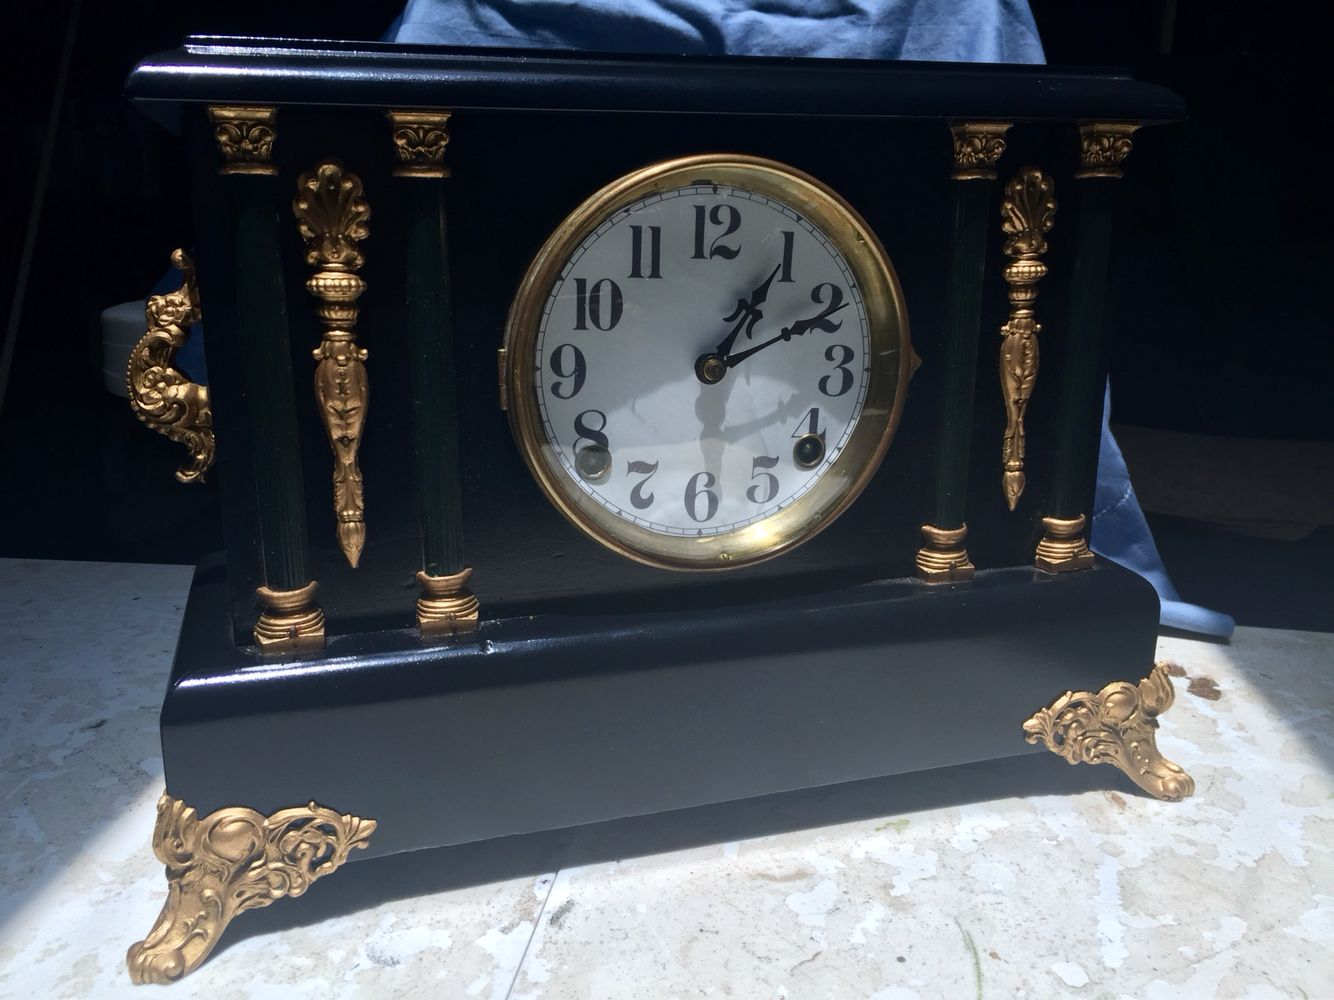 Antique Sessions Mantle Clock Ornate Guilded Ornamentation Clock Mantle Clock Antique Clocks